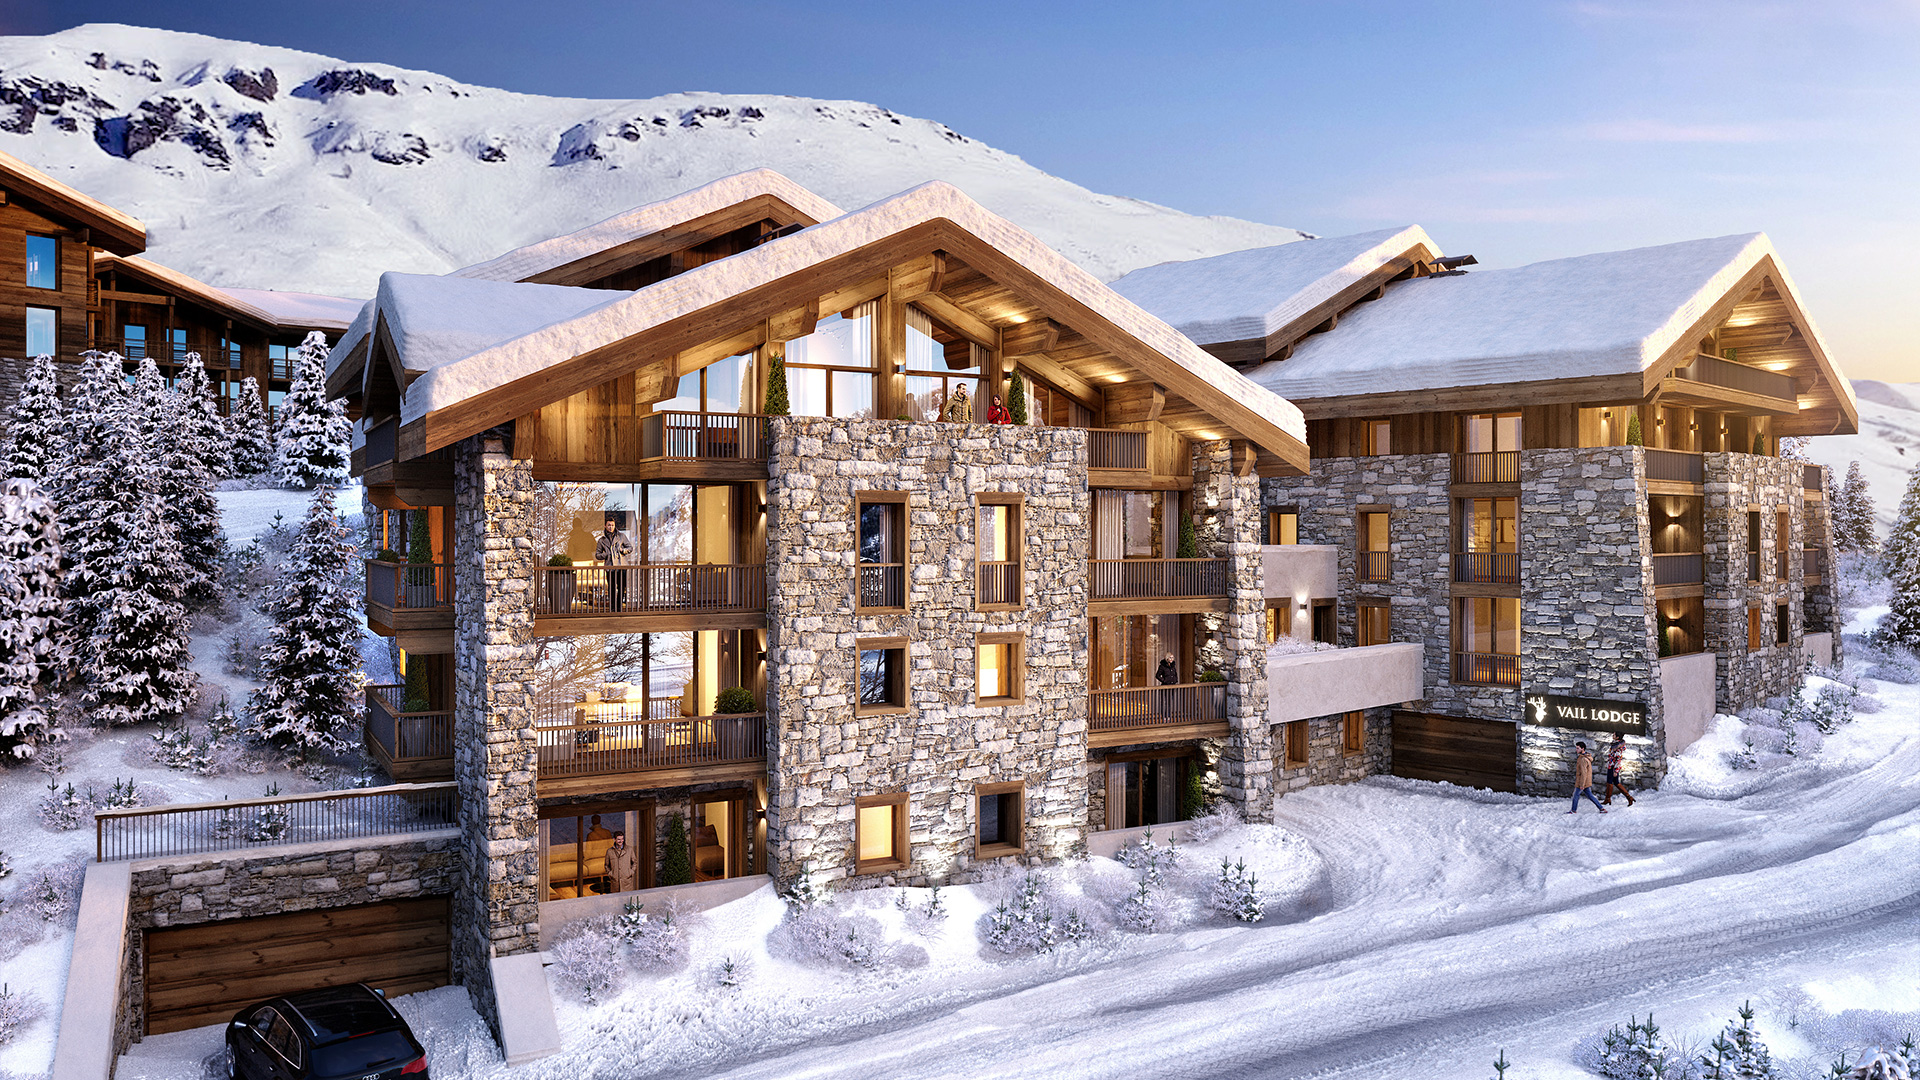 Vail Lodge Apartments, France